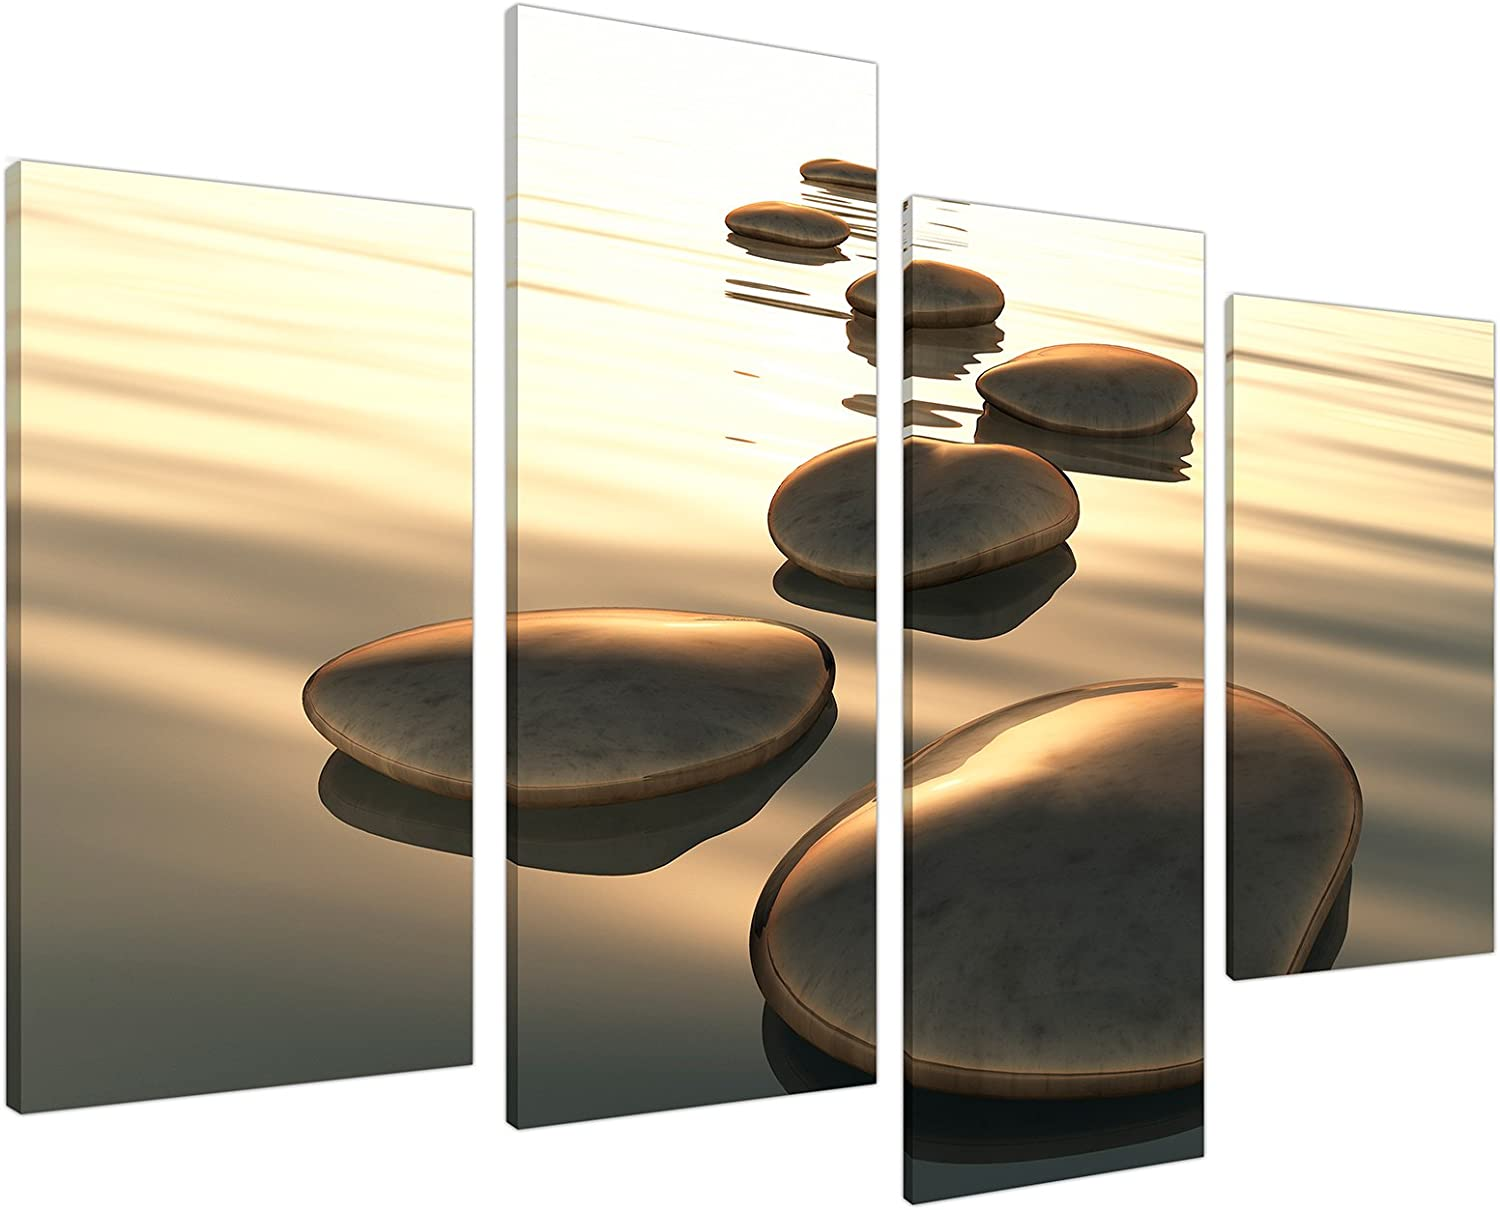 Brown Zen Canvas Wall Art Decor - Soothing Stones - Relaxing Framed Pictures for Bathroom Living Room or Bedroom - Set of 4 Panels - 130cm / 51